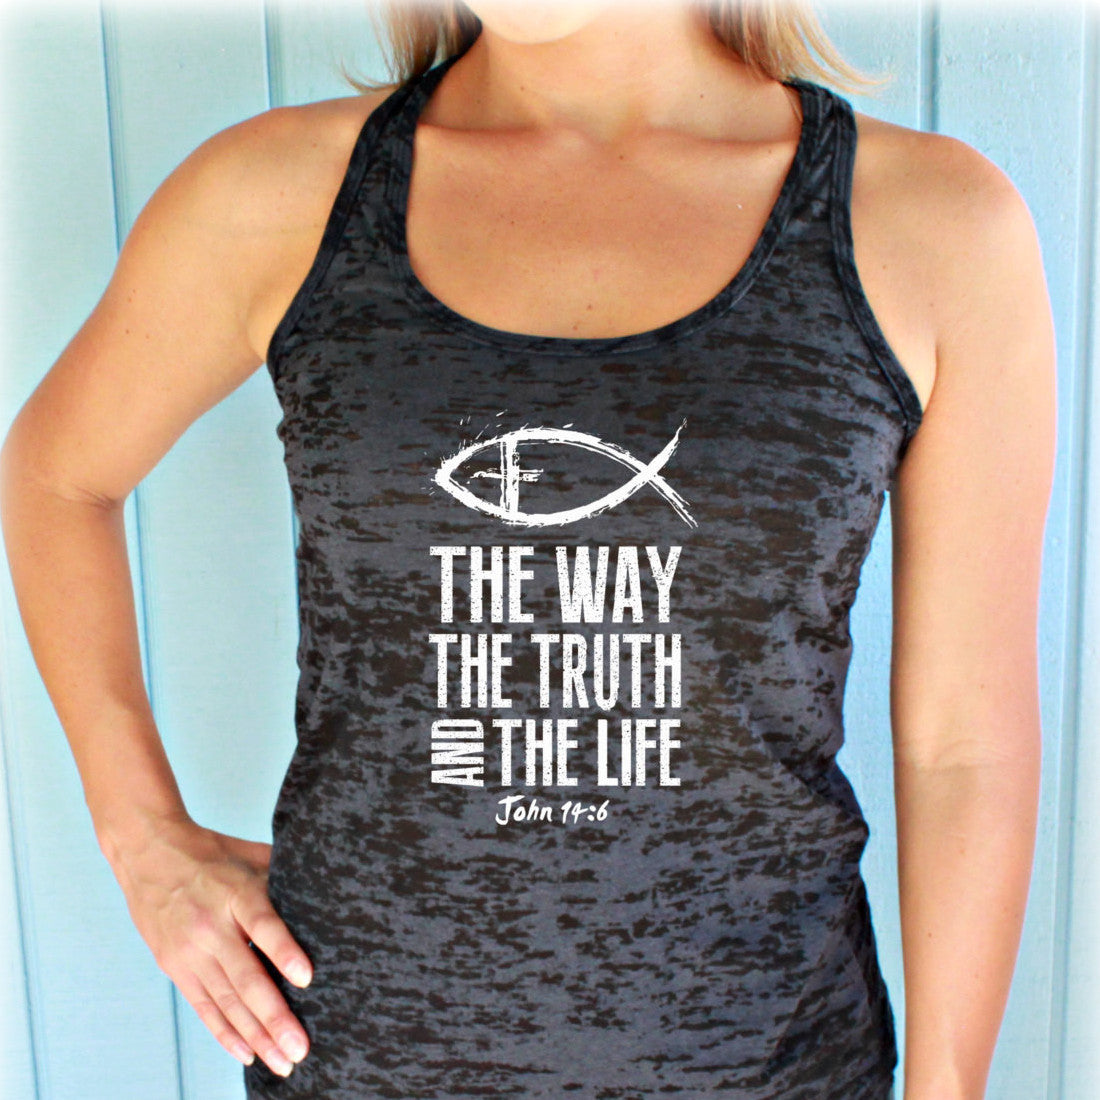 Womens Burnout Workout Tank Top. The Way The Truth And The Life. John 14 6. Motivational Tank. Running Tank. Christian Workout Clothing.